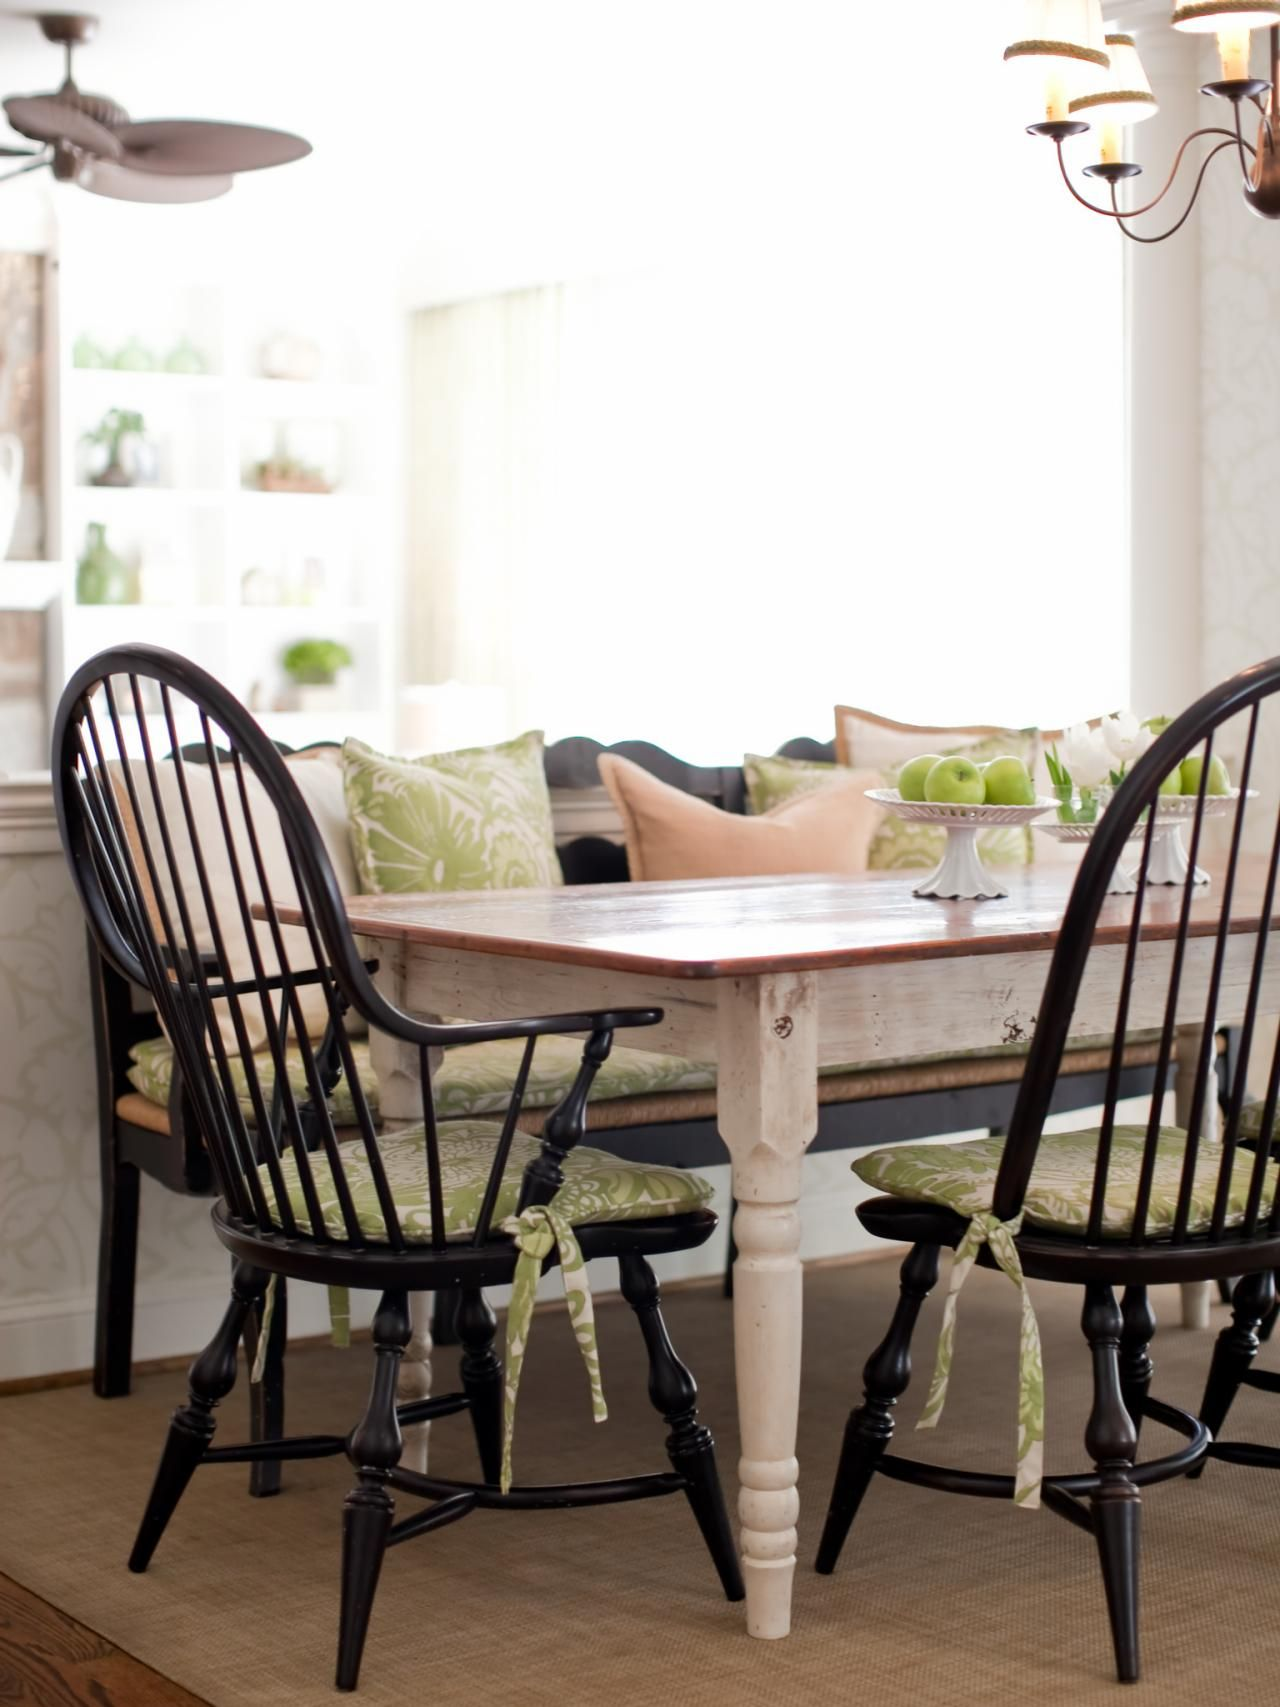 Black Farmhouse Table With Bench This Country Dining Setting Features A Farmhouse Table